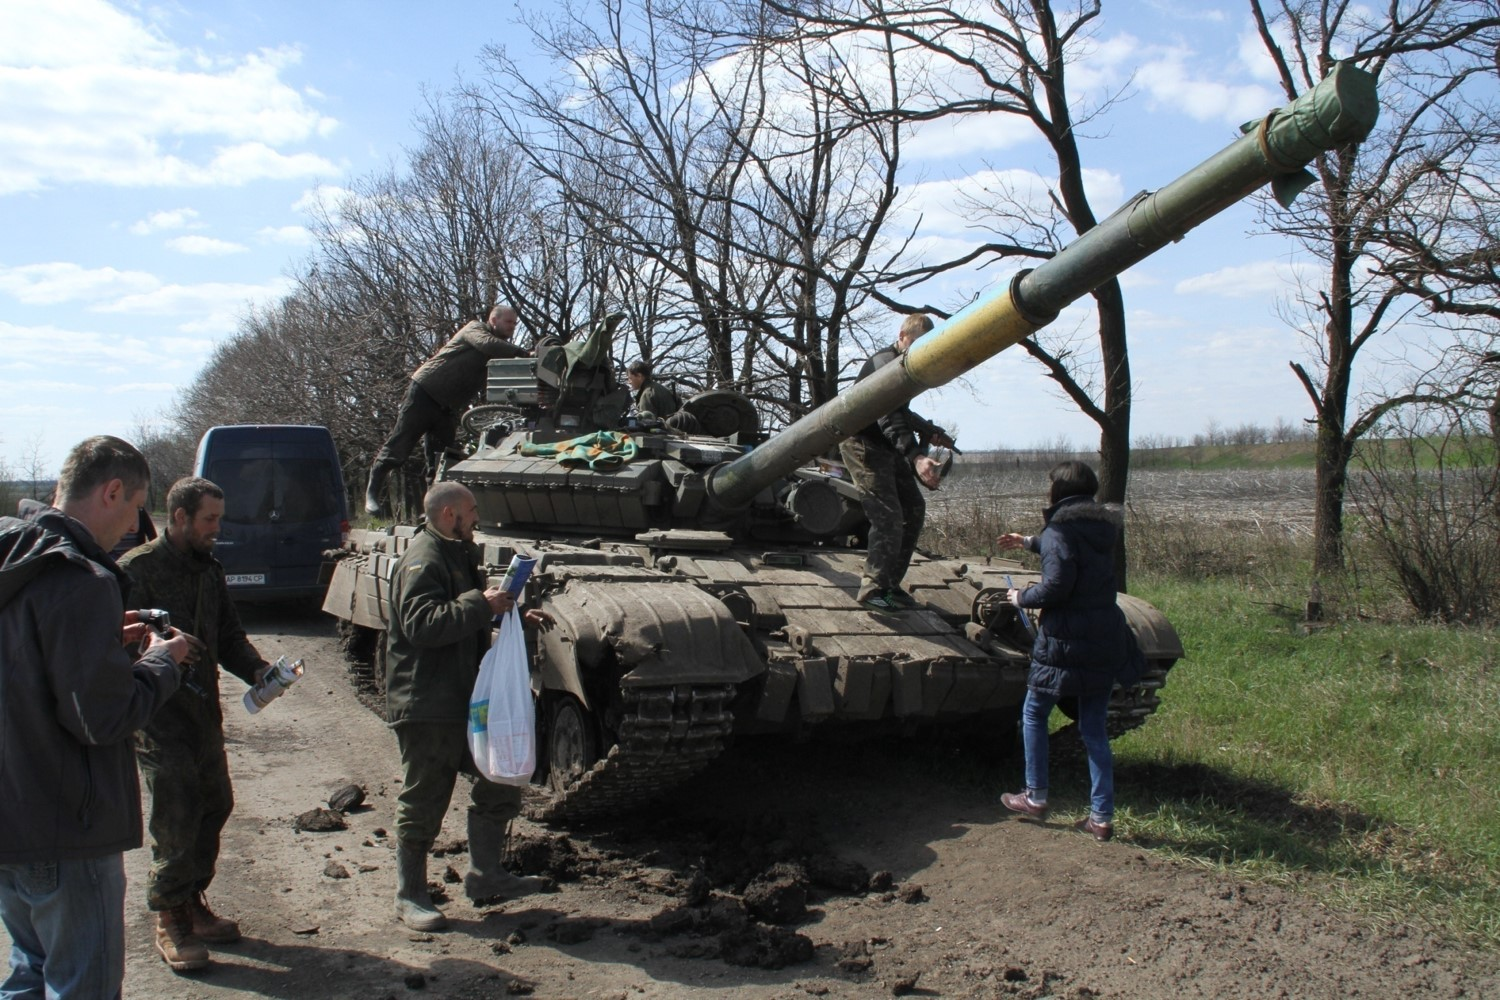 One Christian's Perspective on the Ukraine – Russia Crisis of March 2014